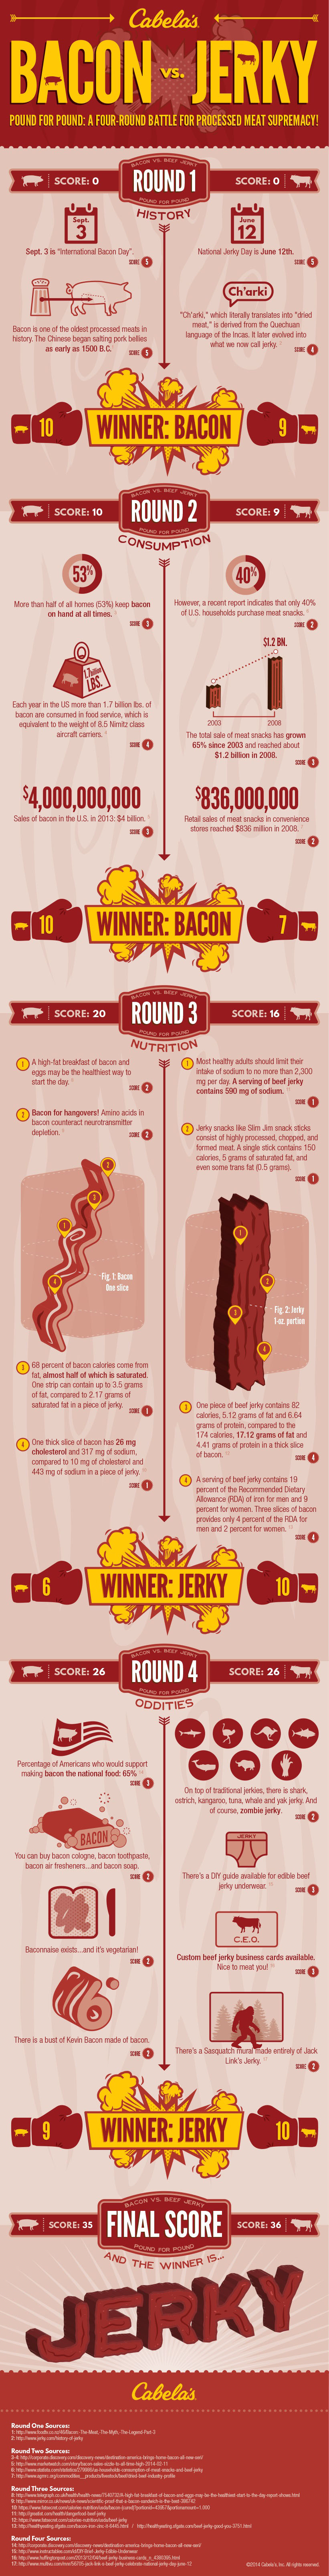 Bacon vs. Jerky